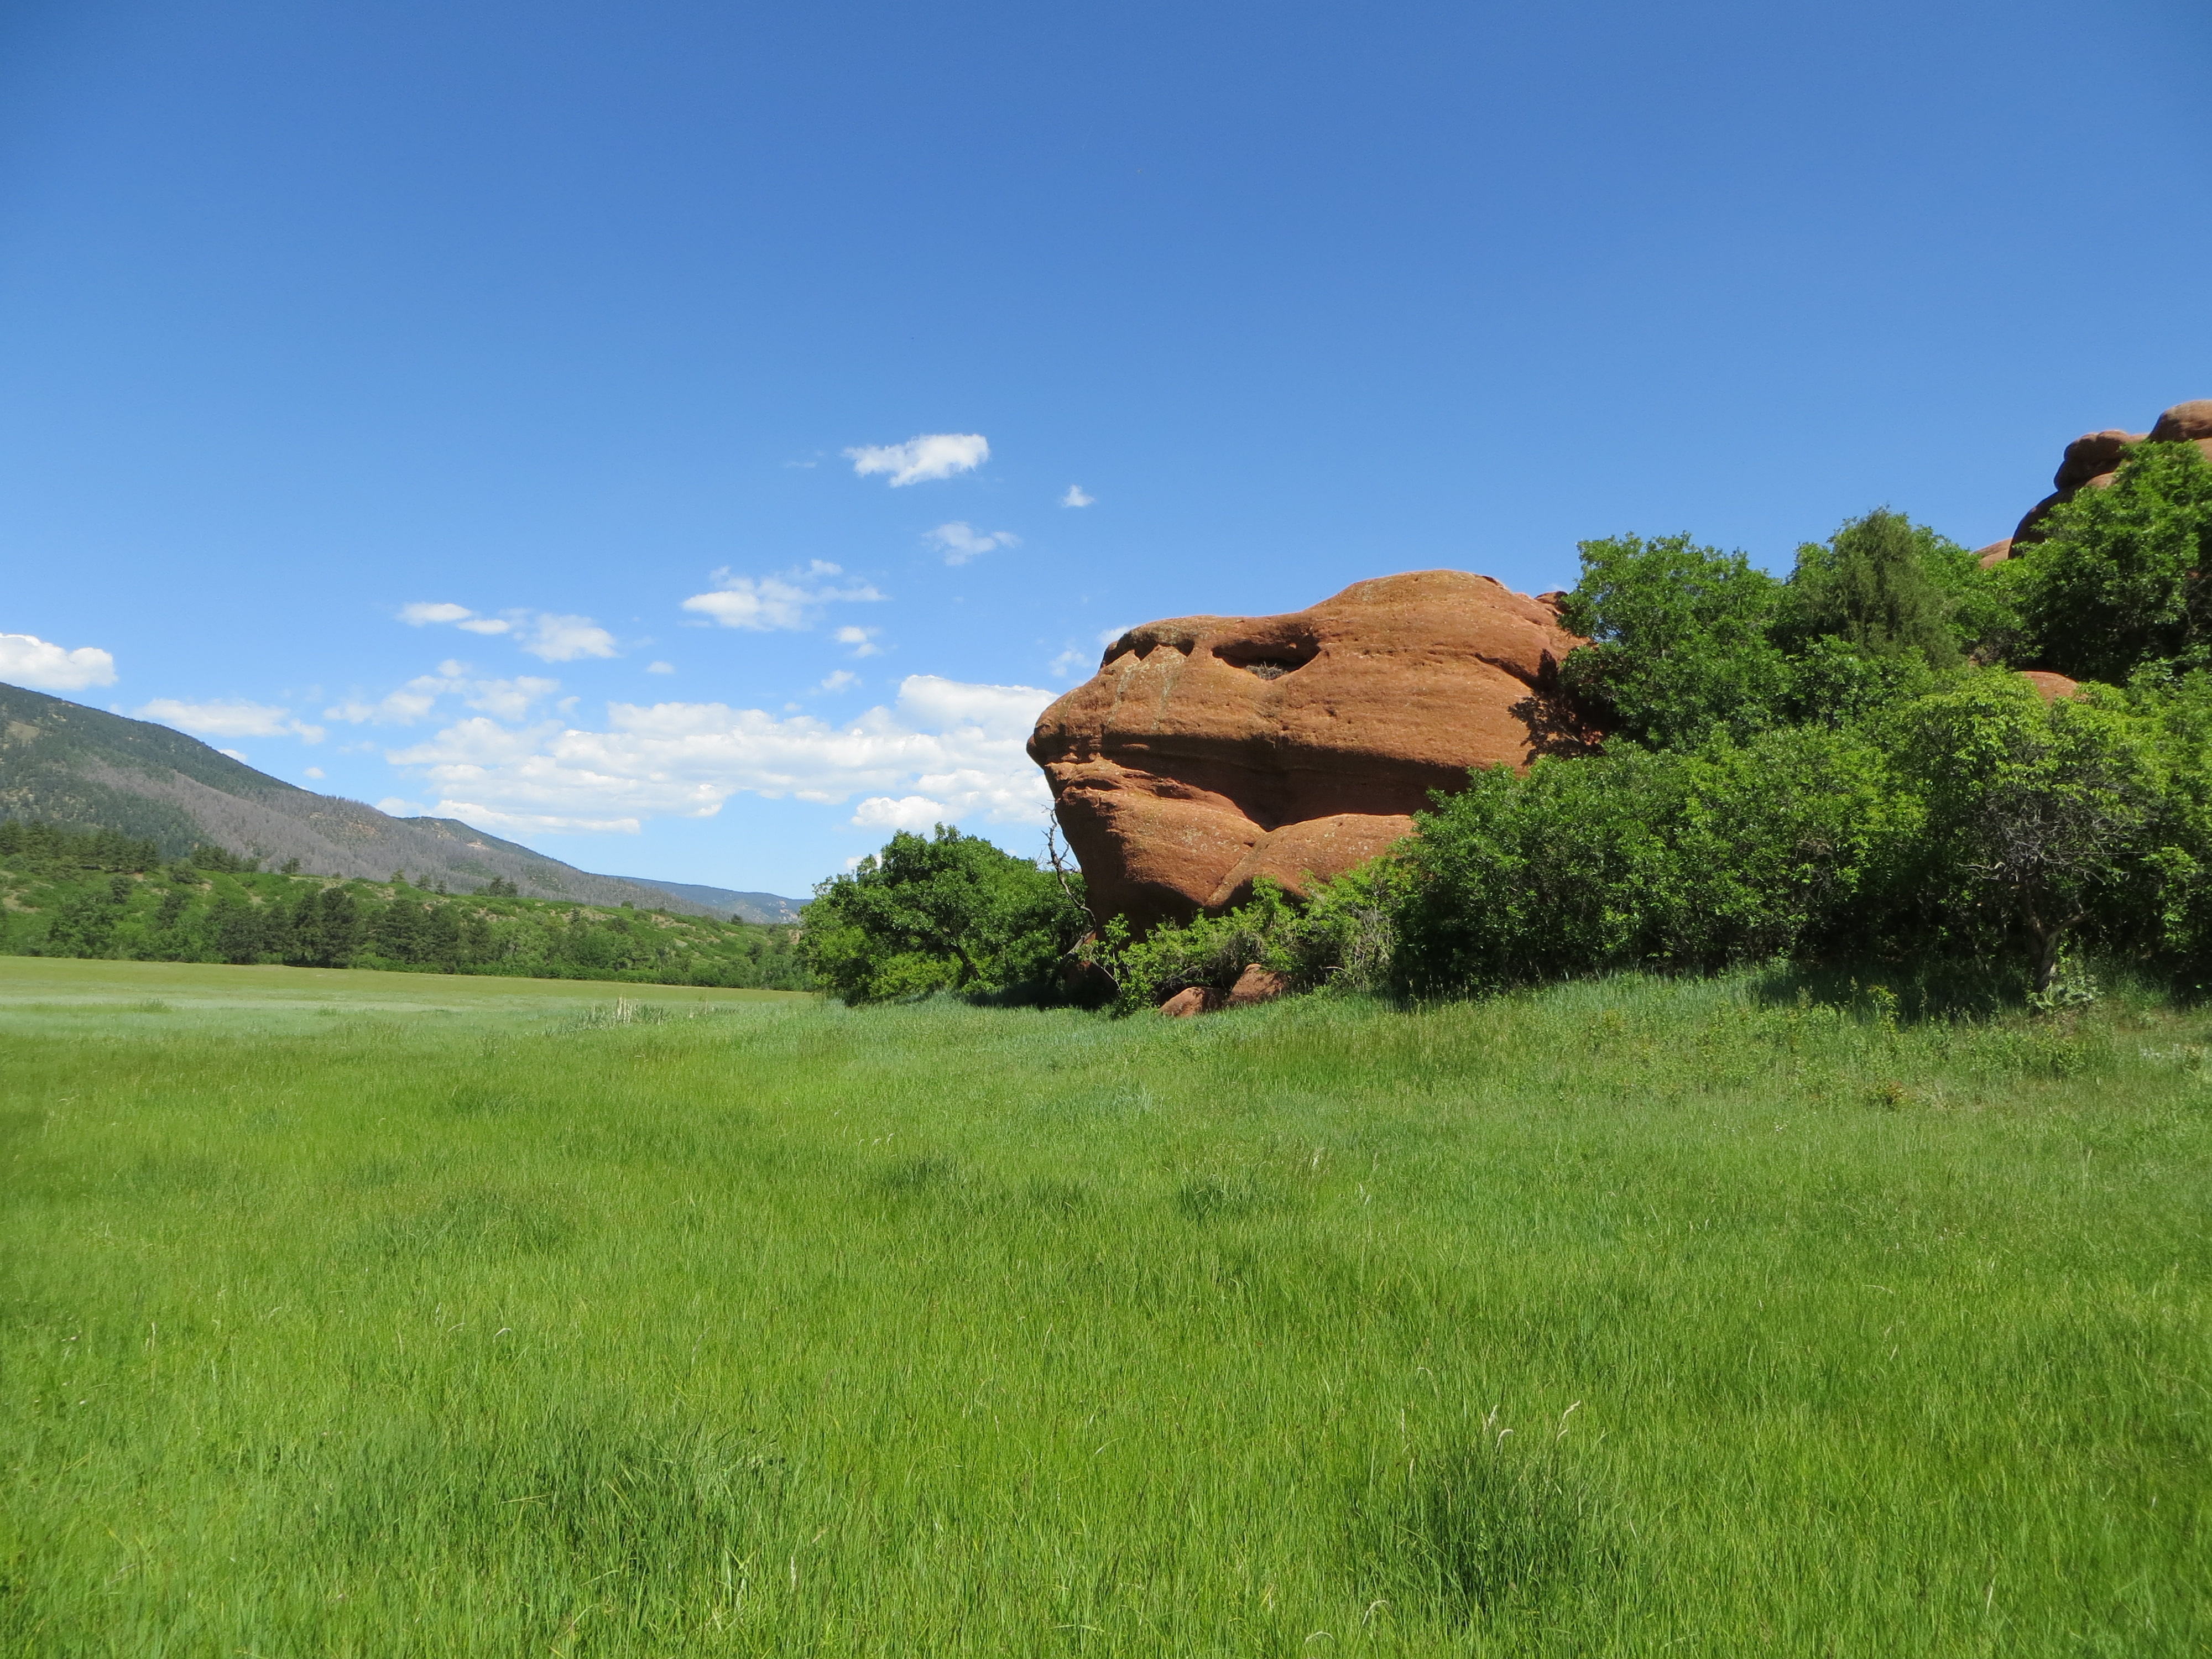 A red rock in a green pasture